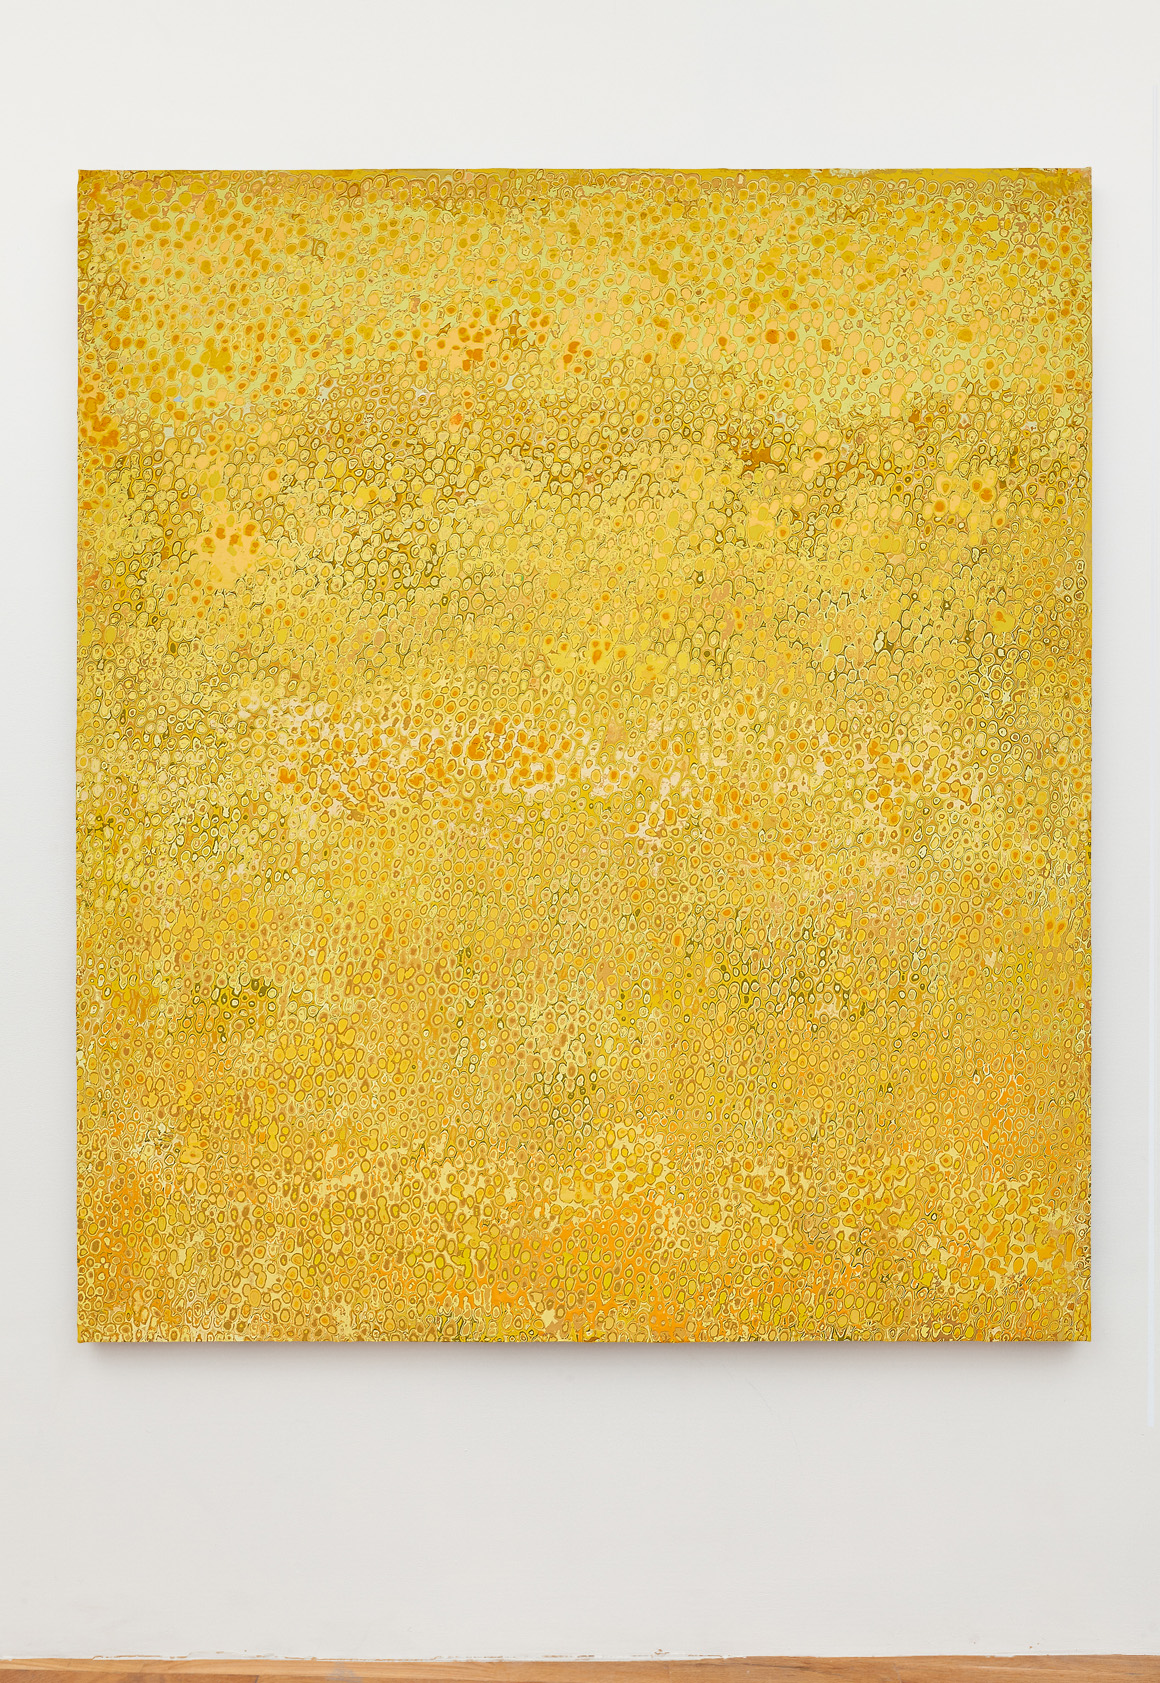 "<p><span class=""name"">Andrew Jensdotter</span><br><em>Yellow 70</em><span class='media'>Carved latex on canvas</span>80 x 68 in (203.2 x 172.7 cm)<br>2018<br><a class='inquire' href='mailto:info@gildargallery.com?subject=Artwork Inquiry AJEN0049&body=I am interested in finding out more about Yellow 70 by Andrew Jensdotter'>Inquire</a></p>"